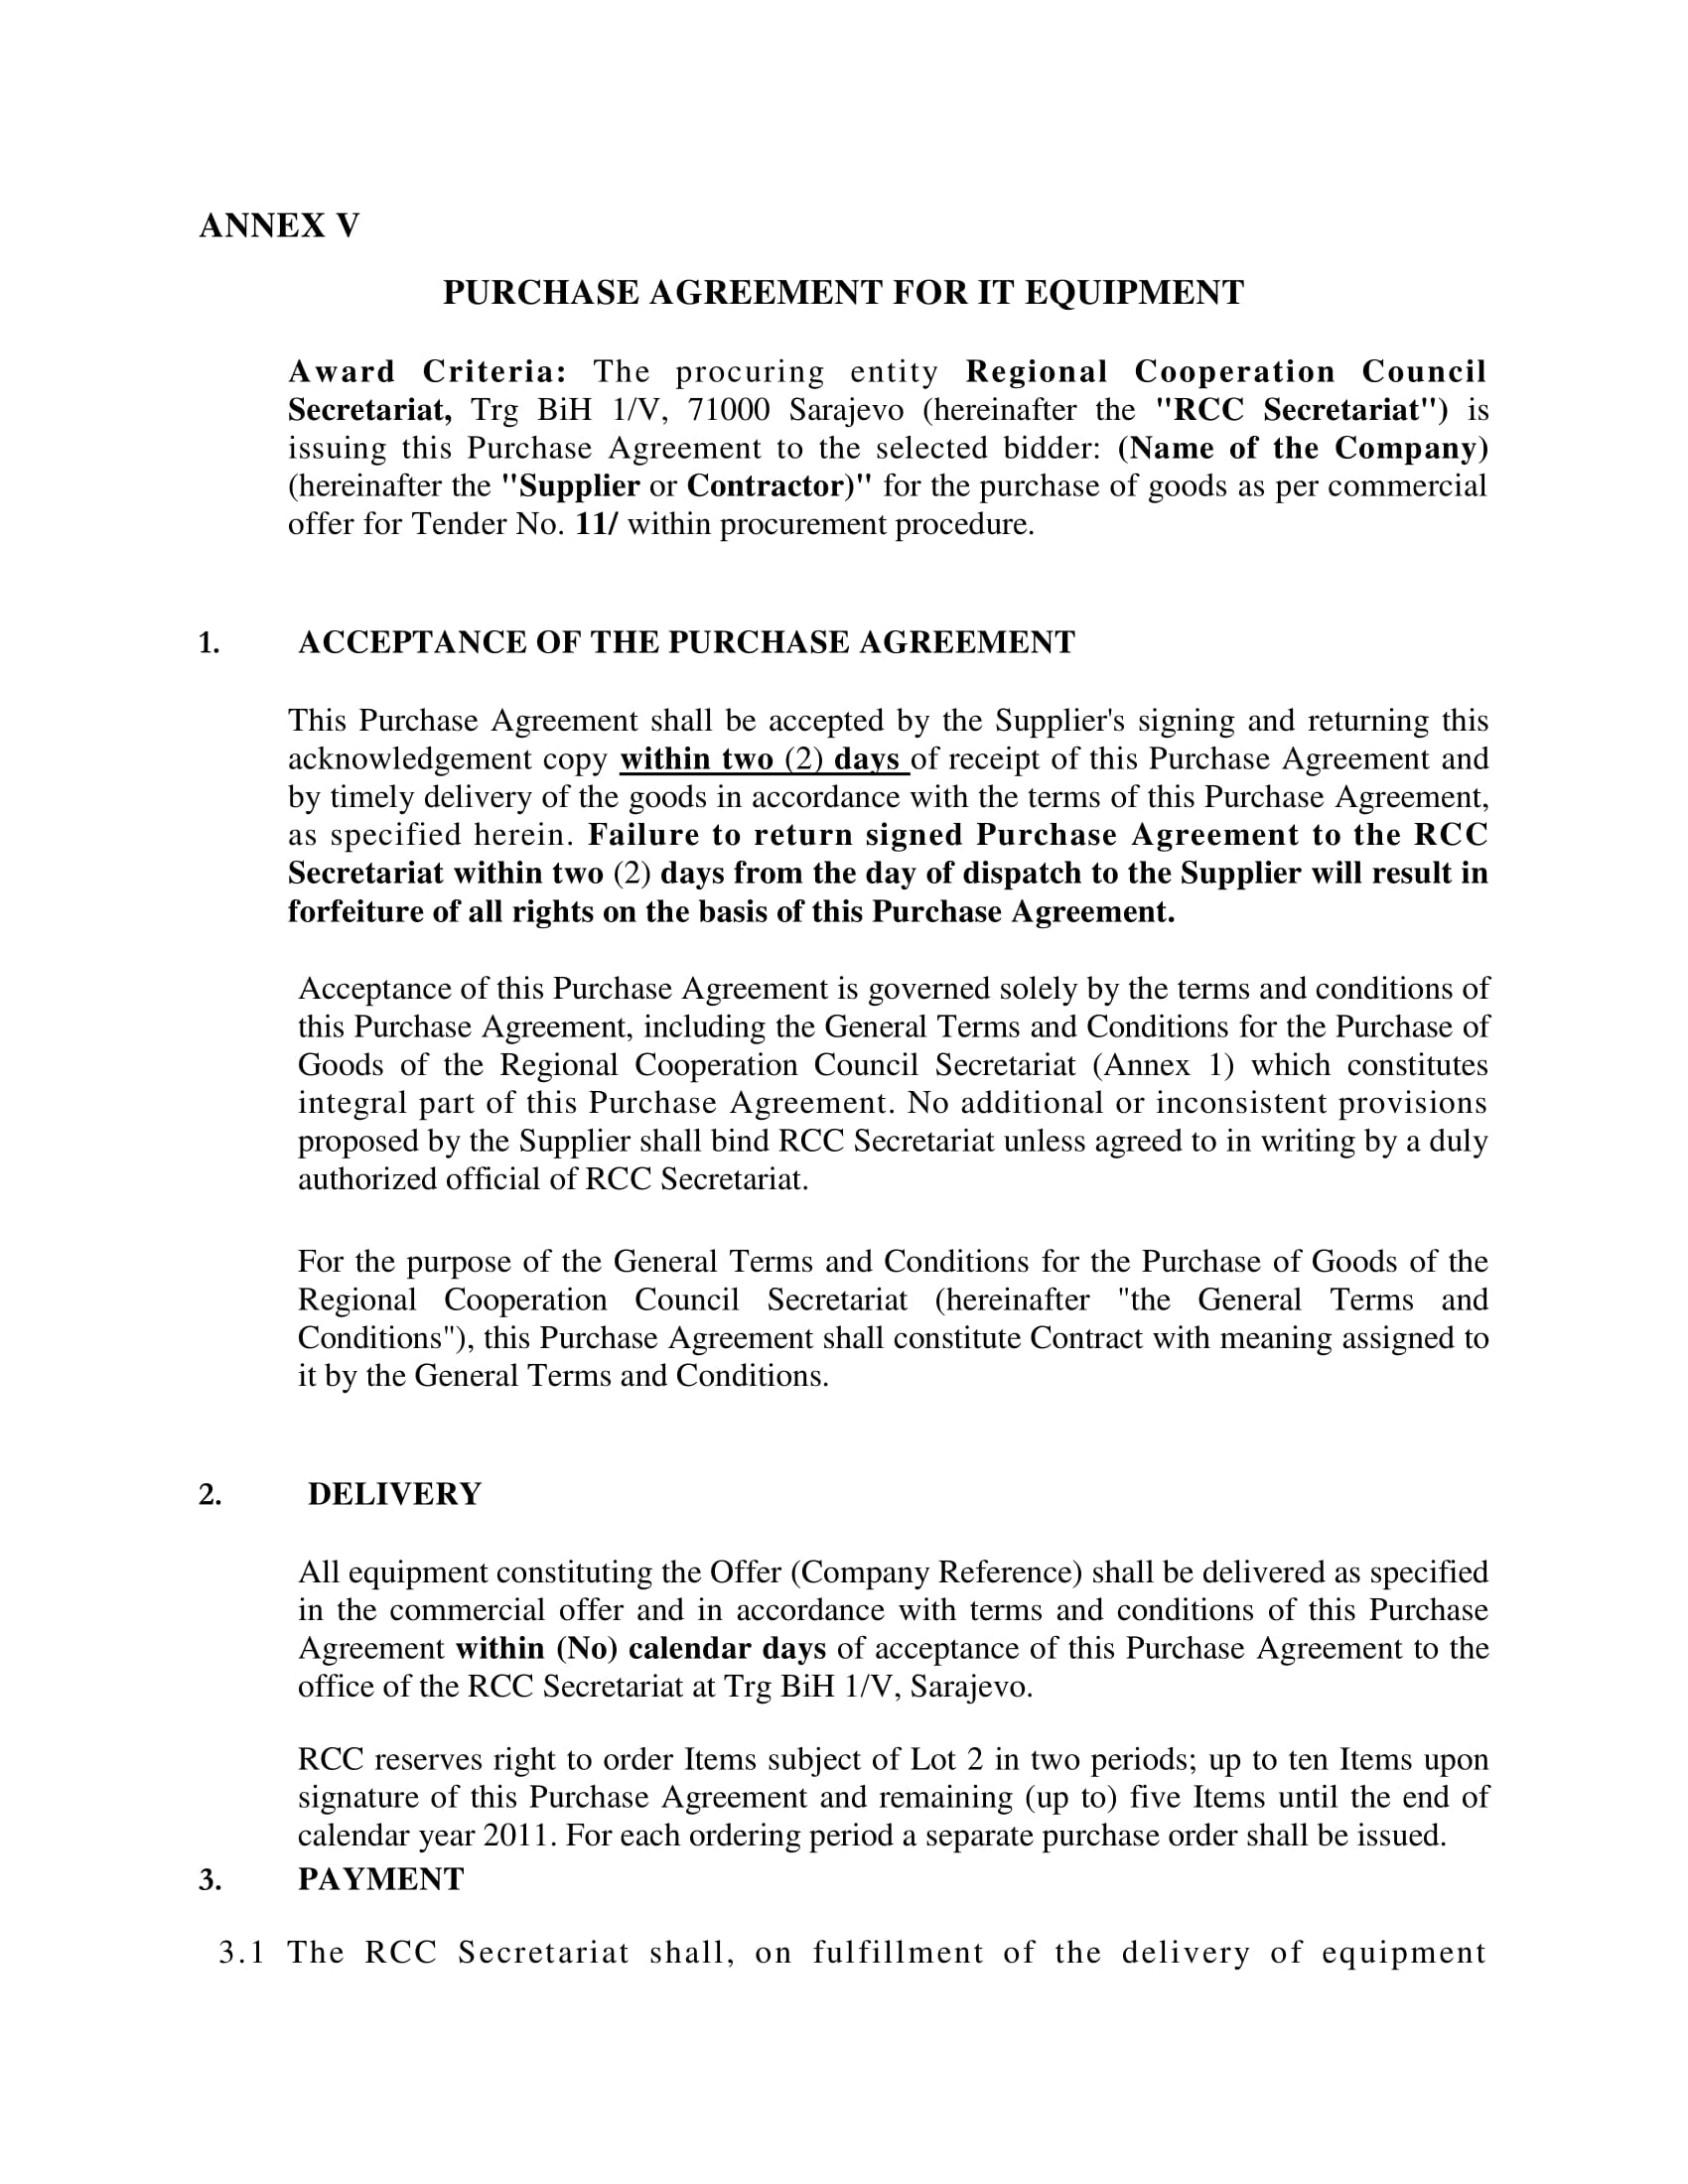 it equipment purchase agreement example